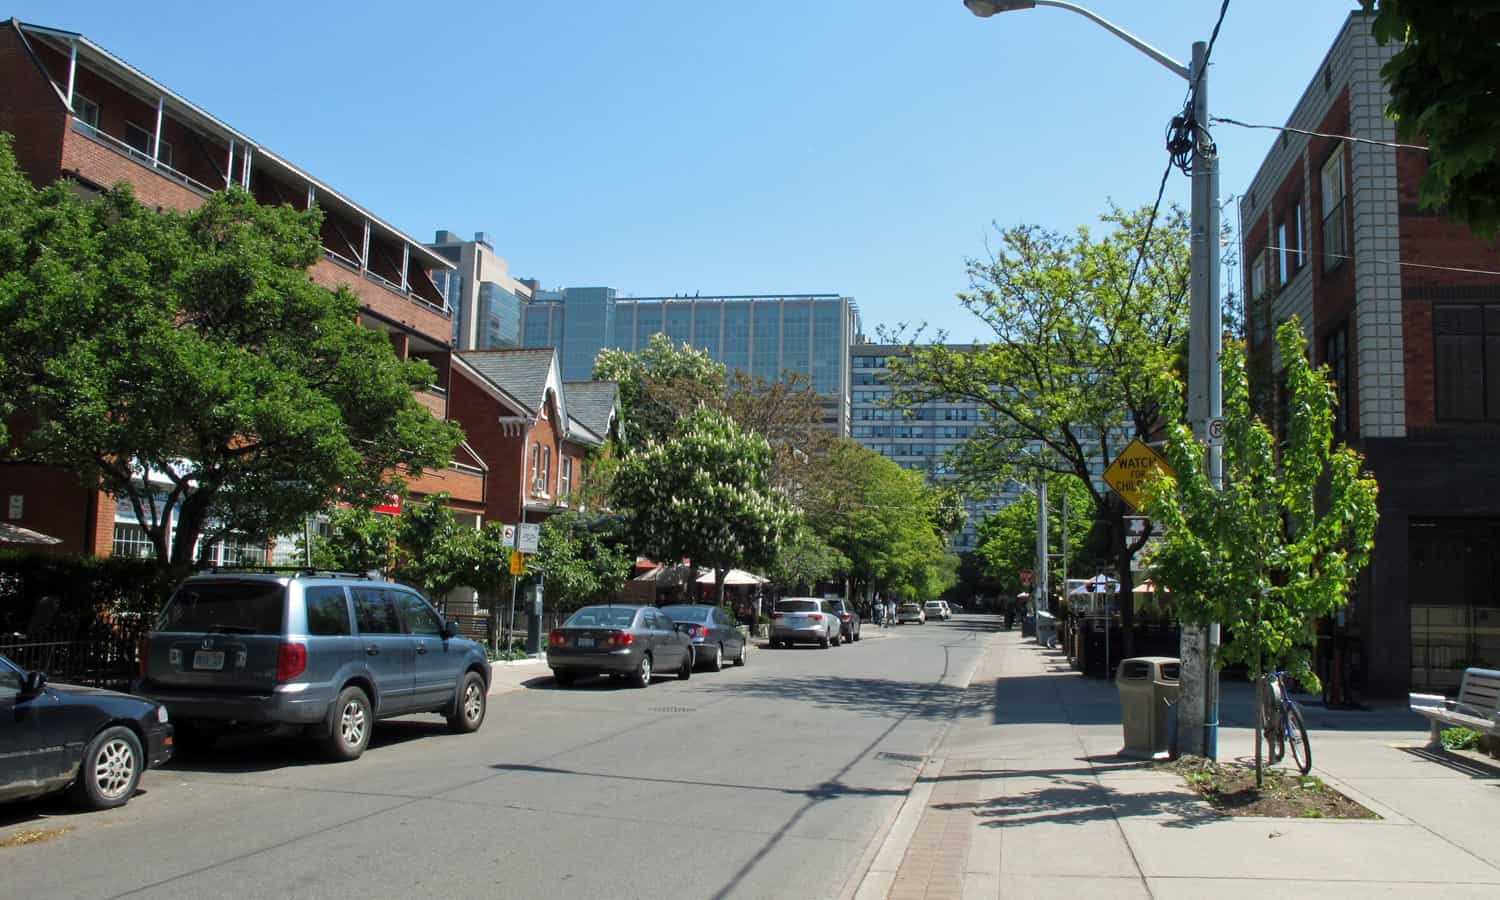 Looking north on Henry Street